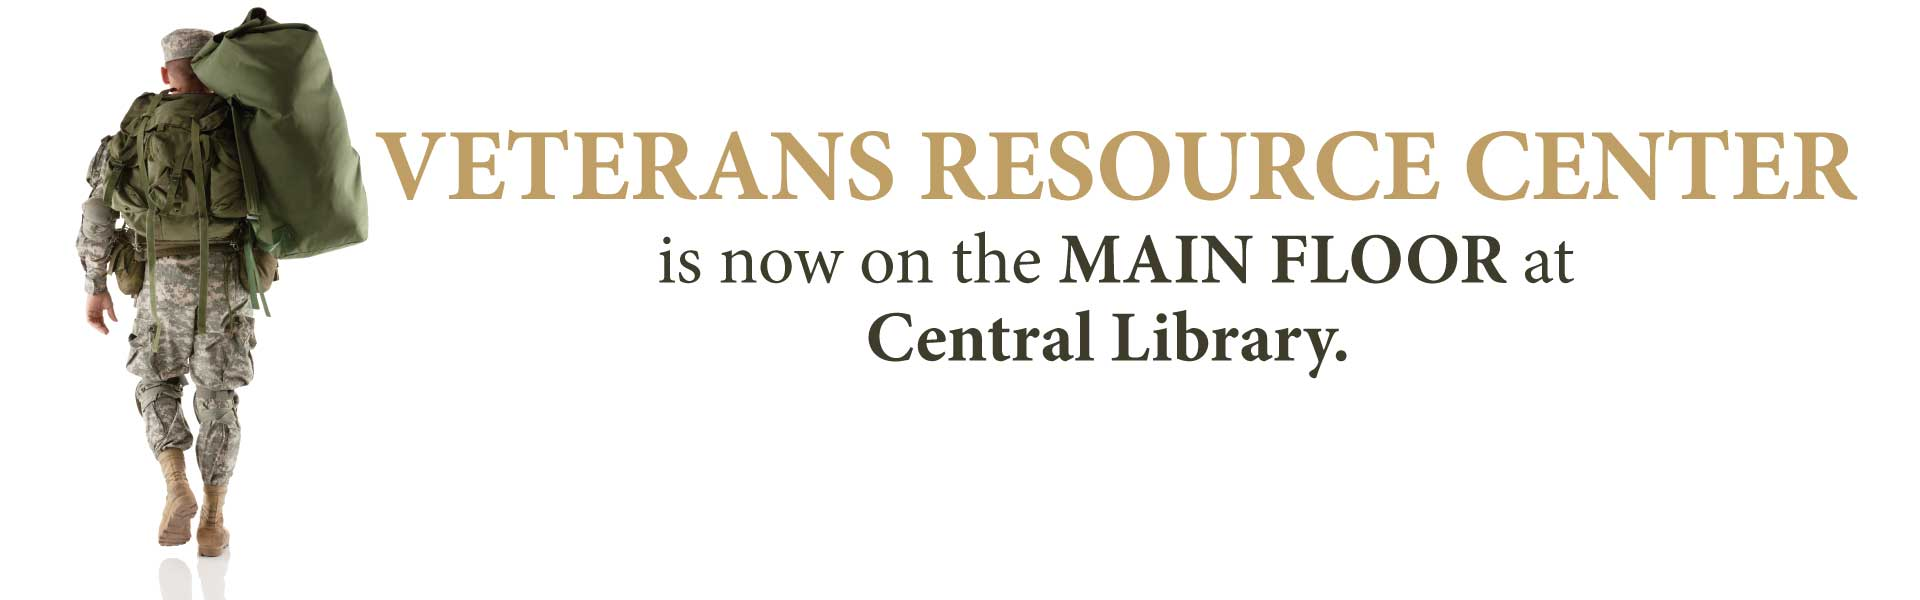 Veterans Resource Center relocated to the Main Floor of the Central Library